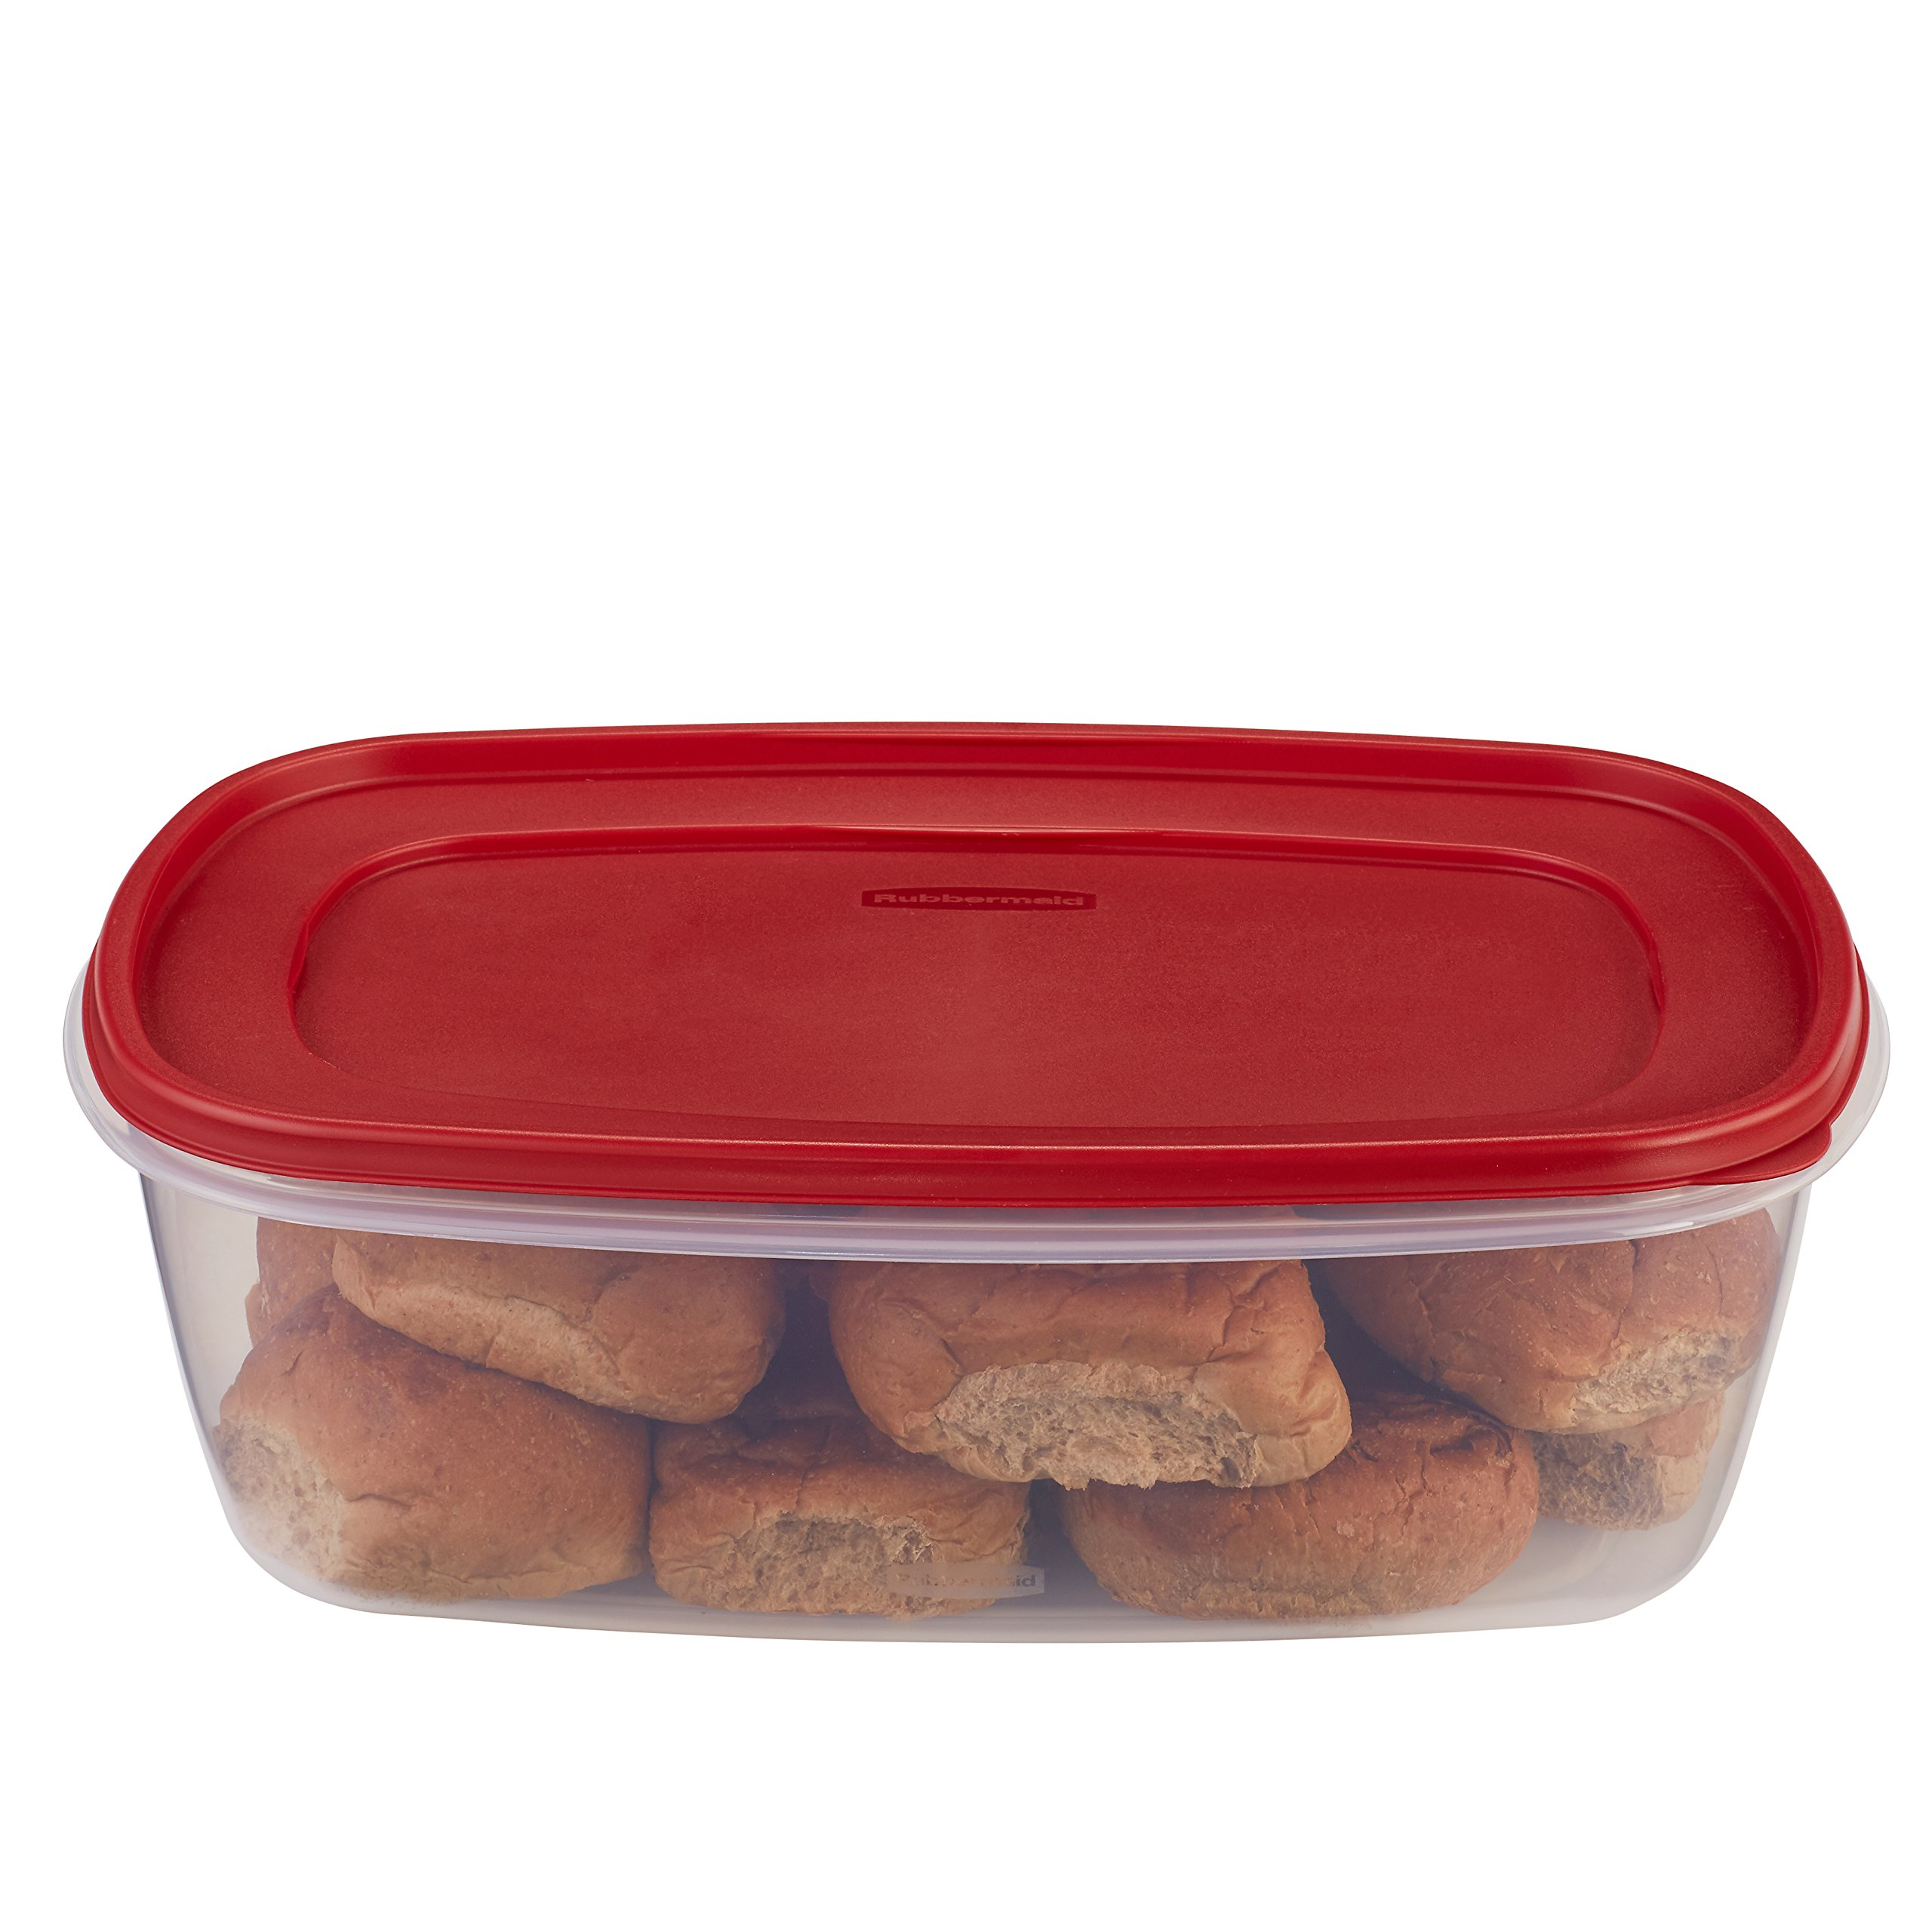 Rubbermaid Easy Find Lids Food Storage Container, 2.5 Gallon, Racer Red